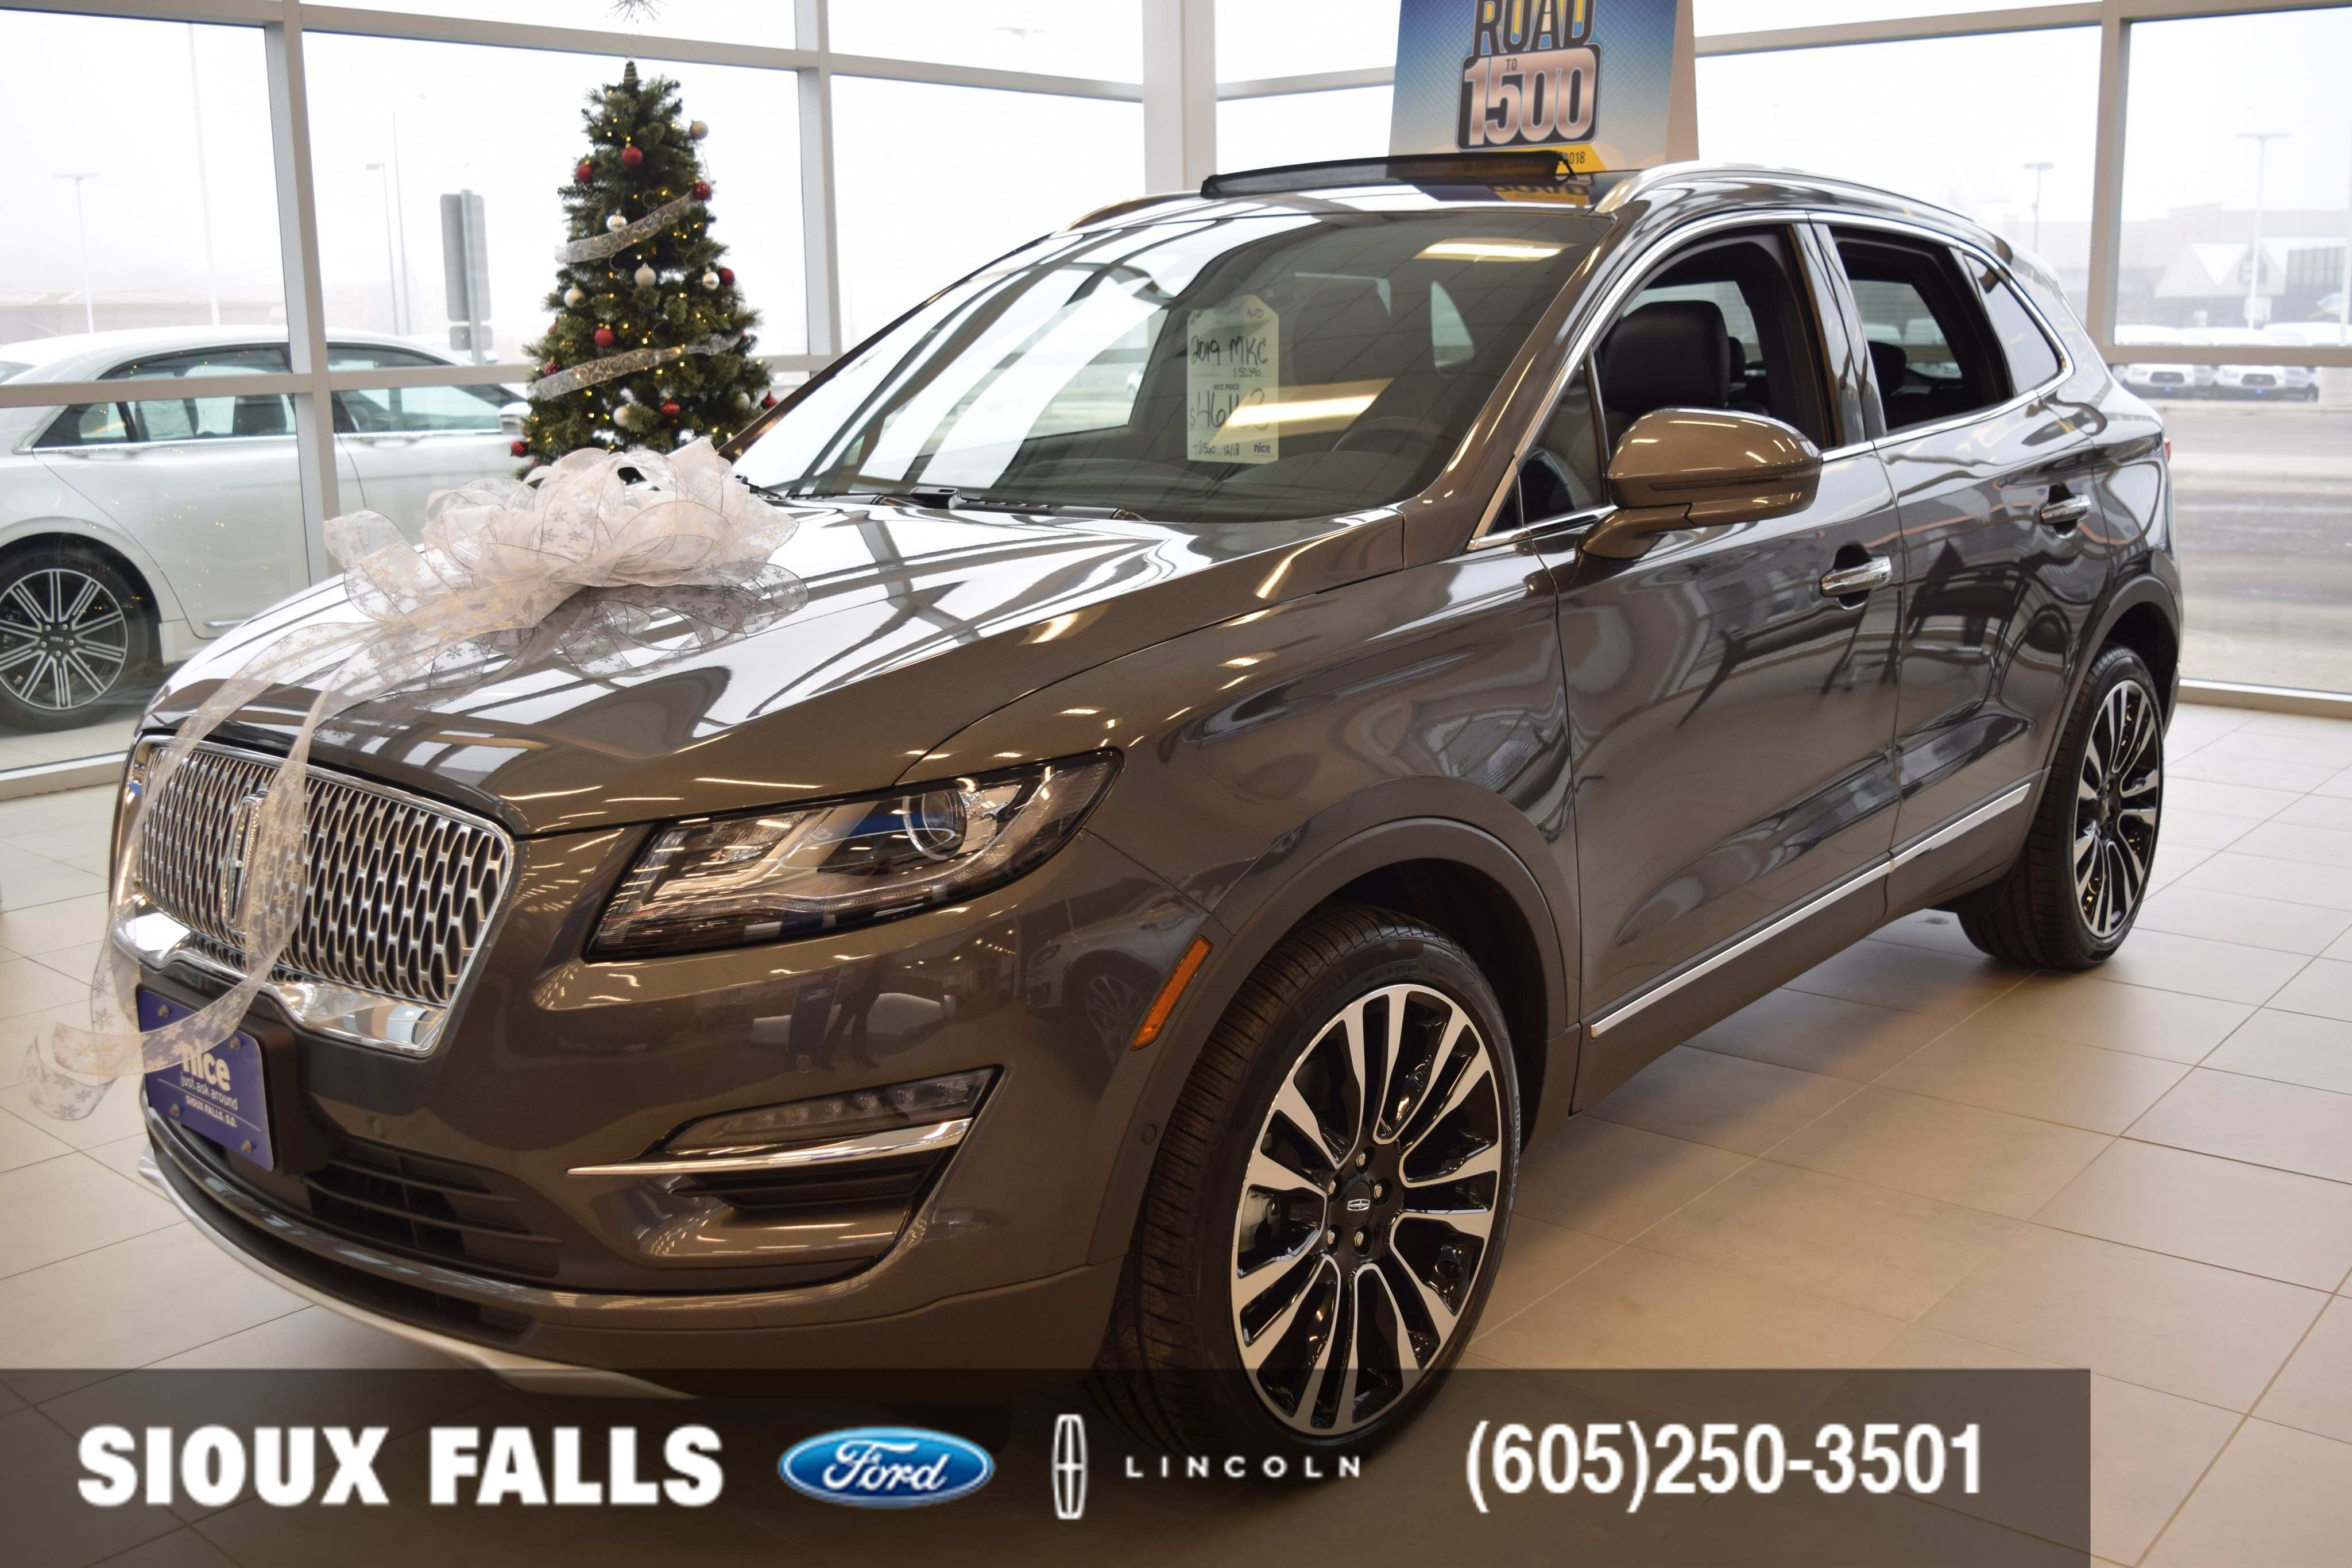 54 The Best 2019 Lincoln MKC Interior